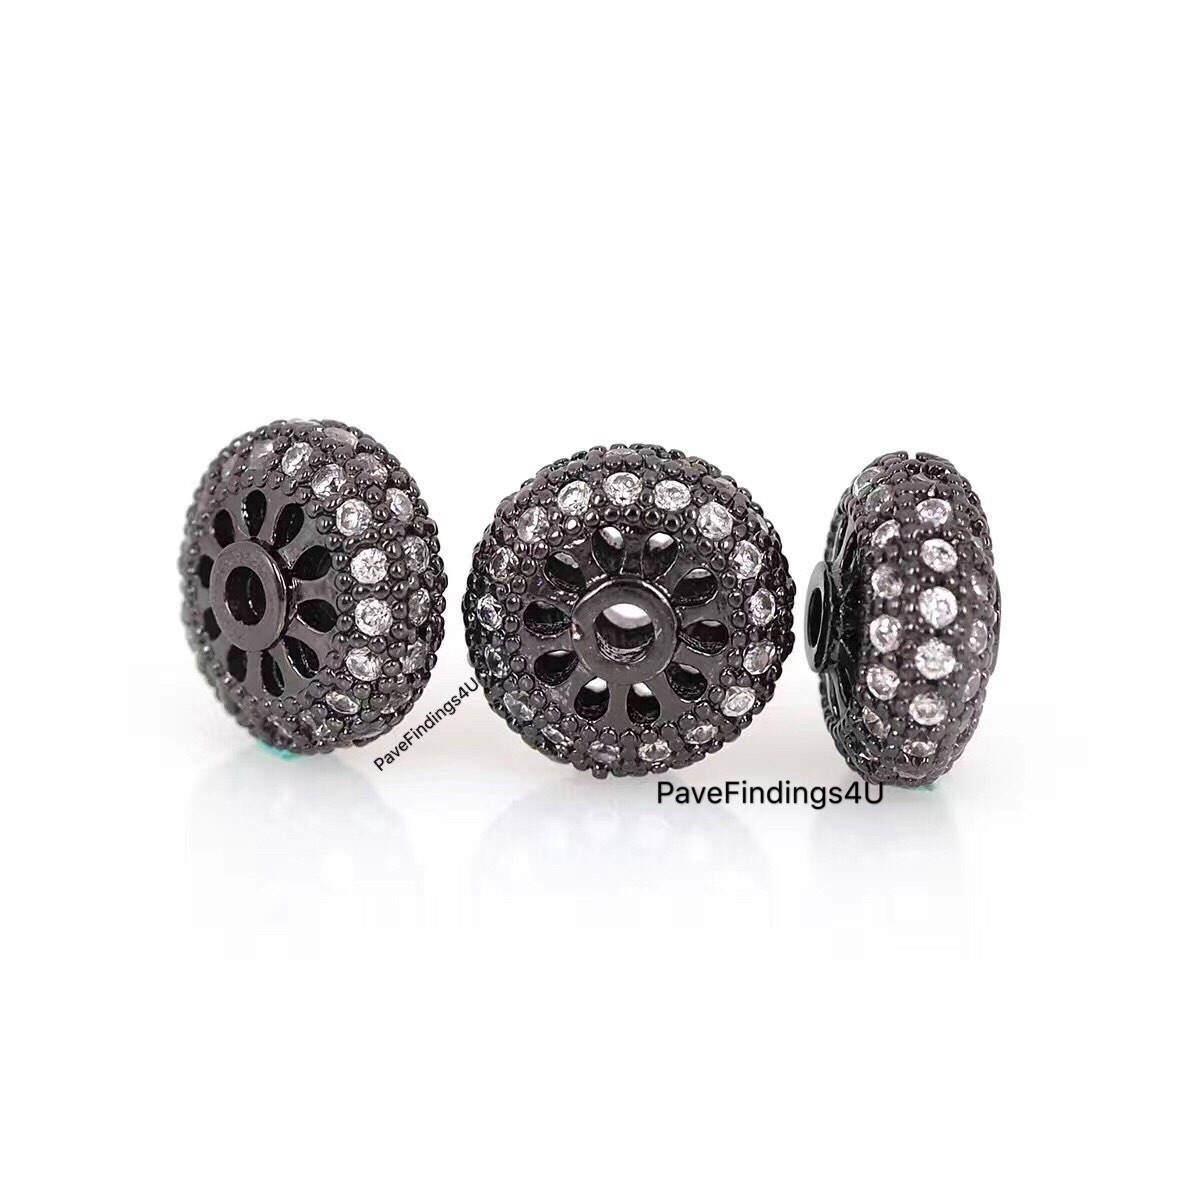 2pcs charm Metal Rhinestone Beads Roundel Spacer